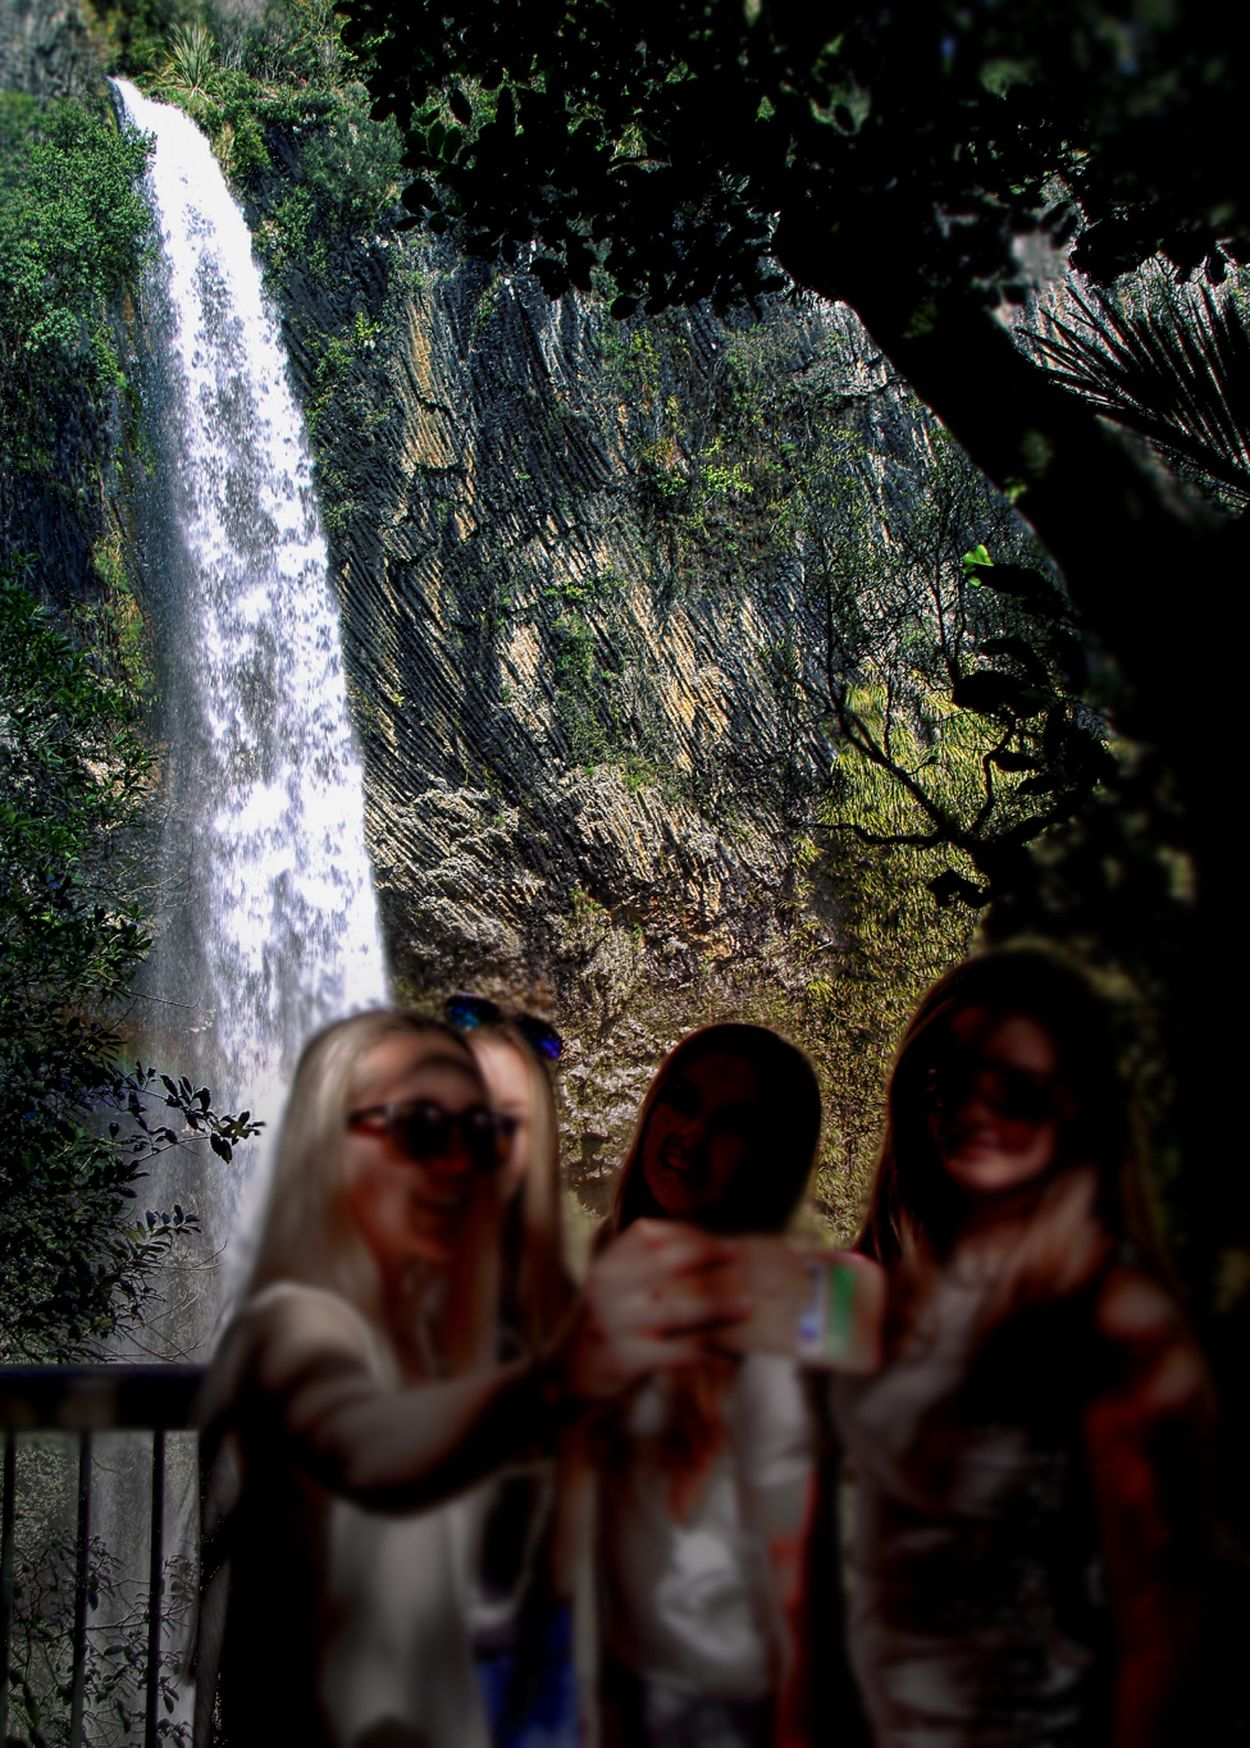 People Watching Protecting Where We Play Selfie ✌ Selfies Waterfall The Tourist Up Close Street Photography Showing Imperfection